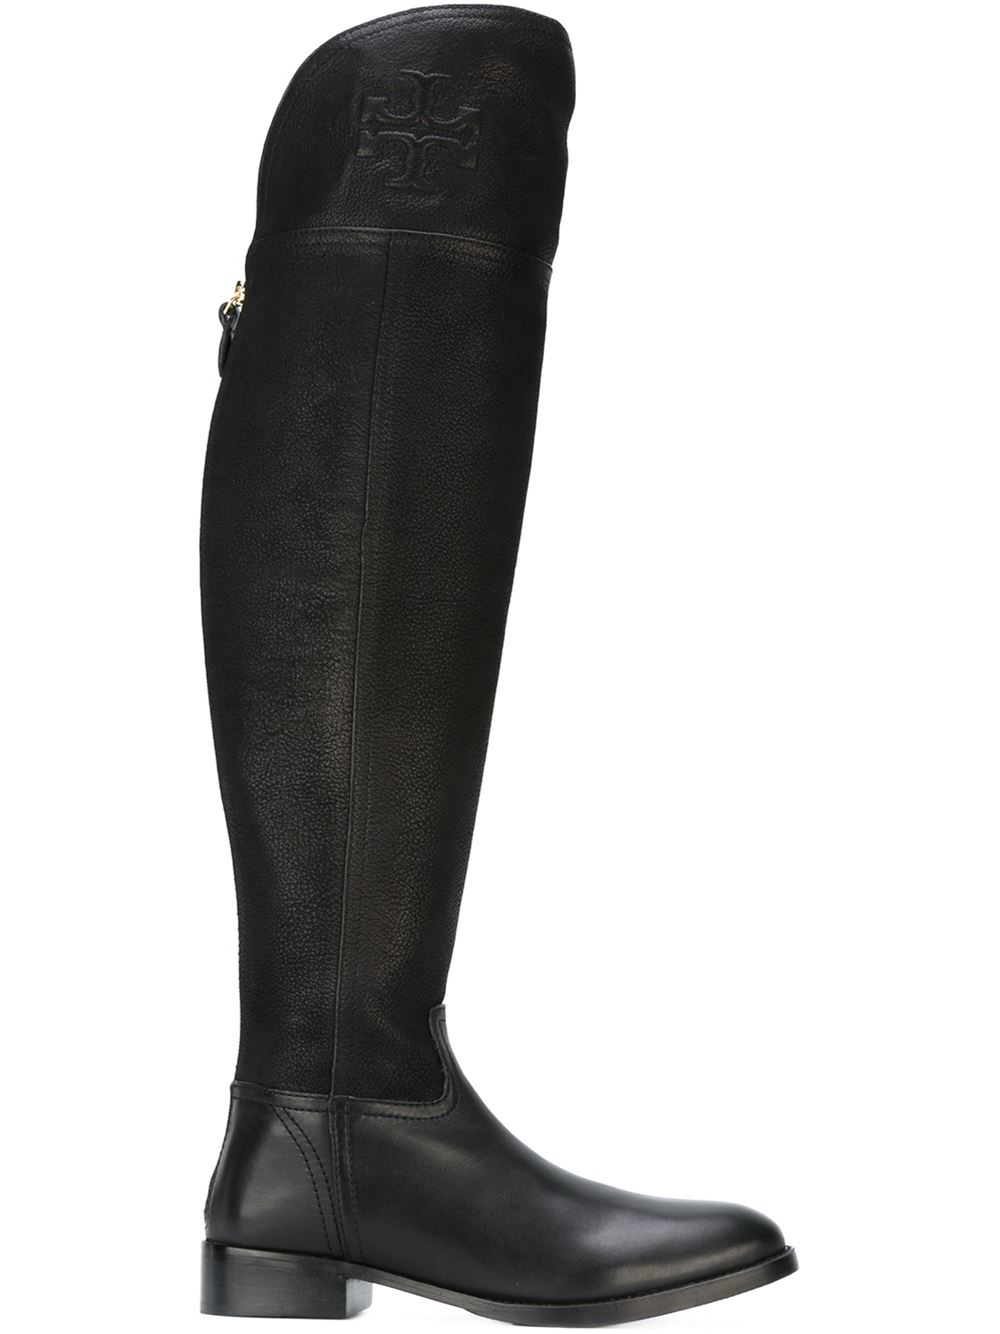 7335ce5dc3f Lyst - Tory Burch Embossed Logo Knee-high Boots in Black